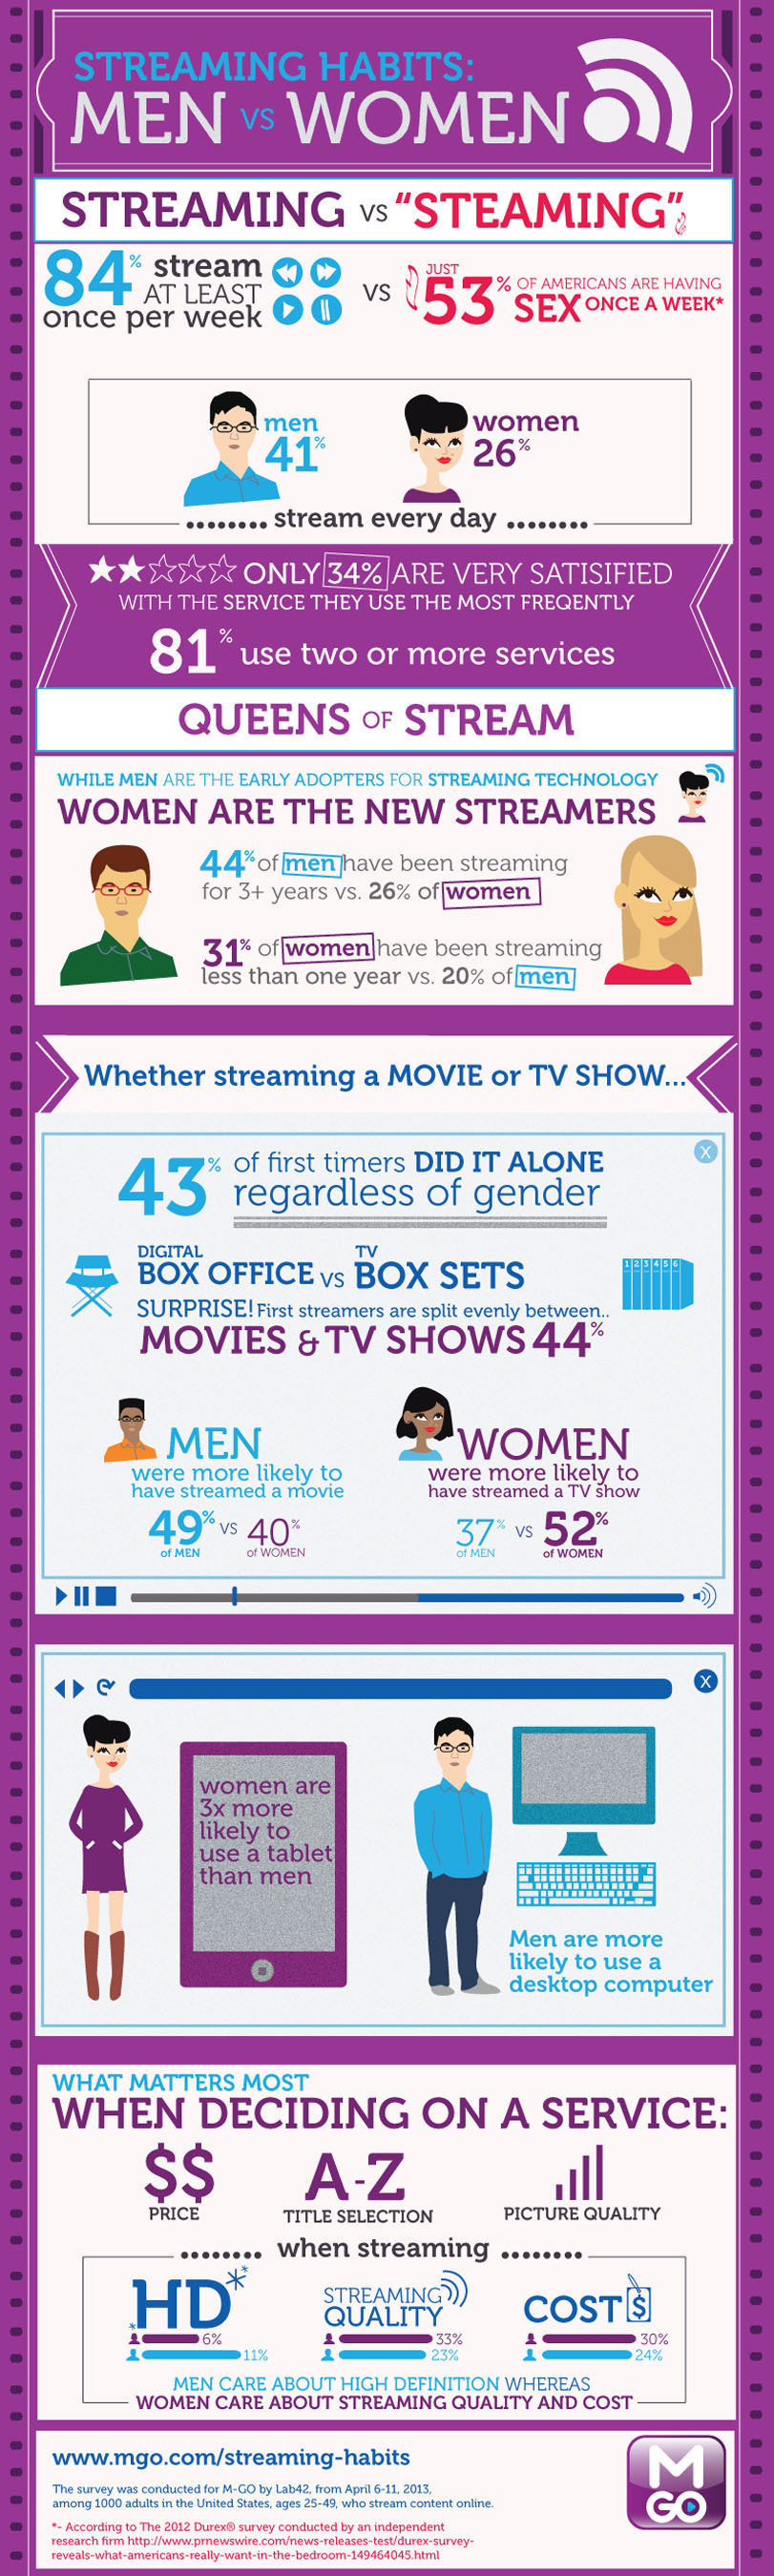 "MEN VS. WOMEN: MORE STREAMING MEDIA HABITS BY GENDER Americans Doing More Streaming than ""Steaming"" on a Weekly Basis & They're Doing it Alone; 'Digitally Frustrated' Consumers also Cheat on Service Providers.  (PRNewsFoto/M-GO)"